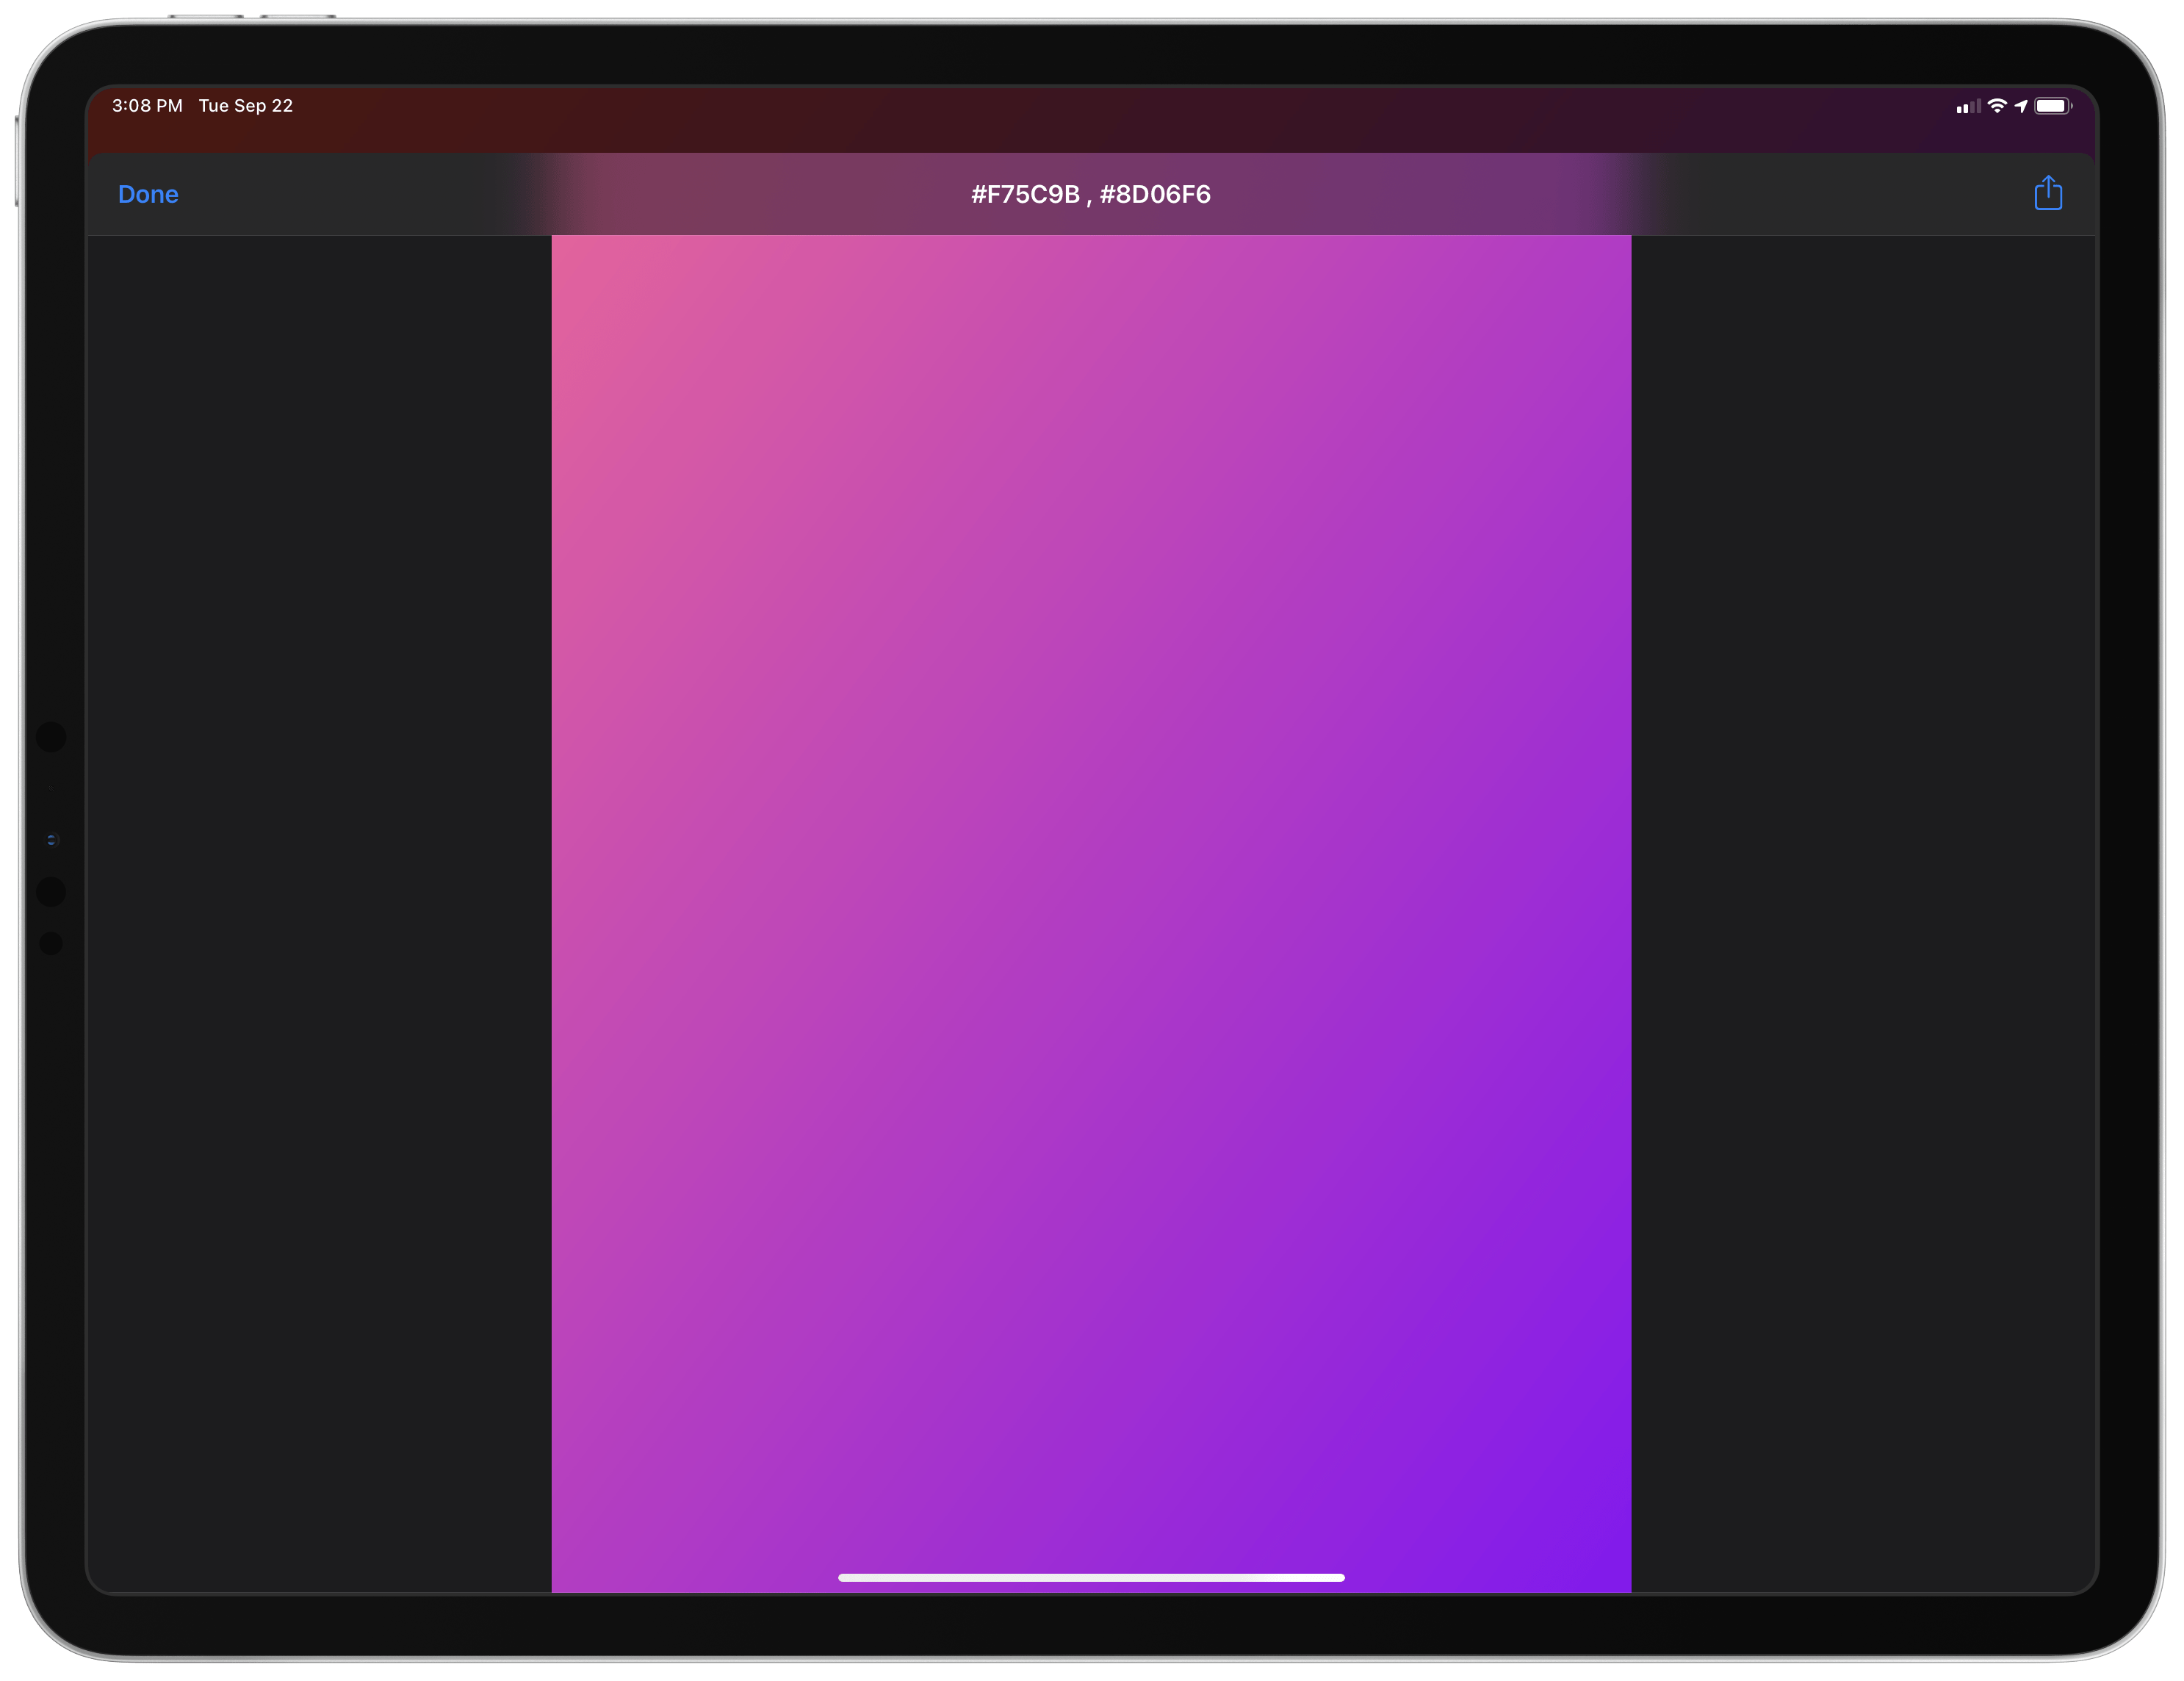 A random gradient generated with WallCreator.